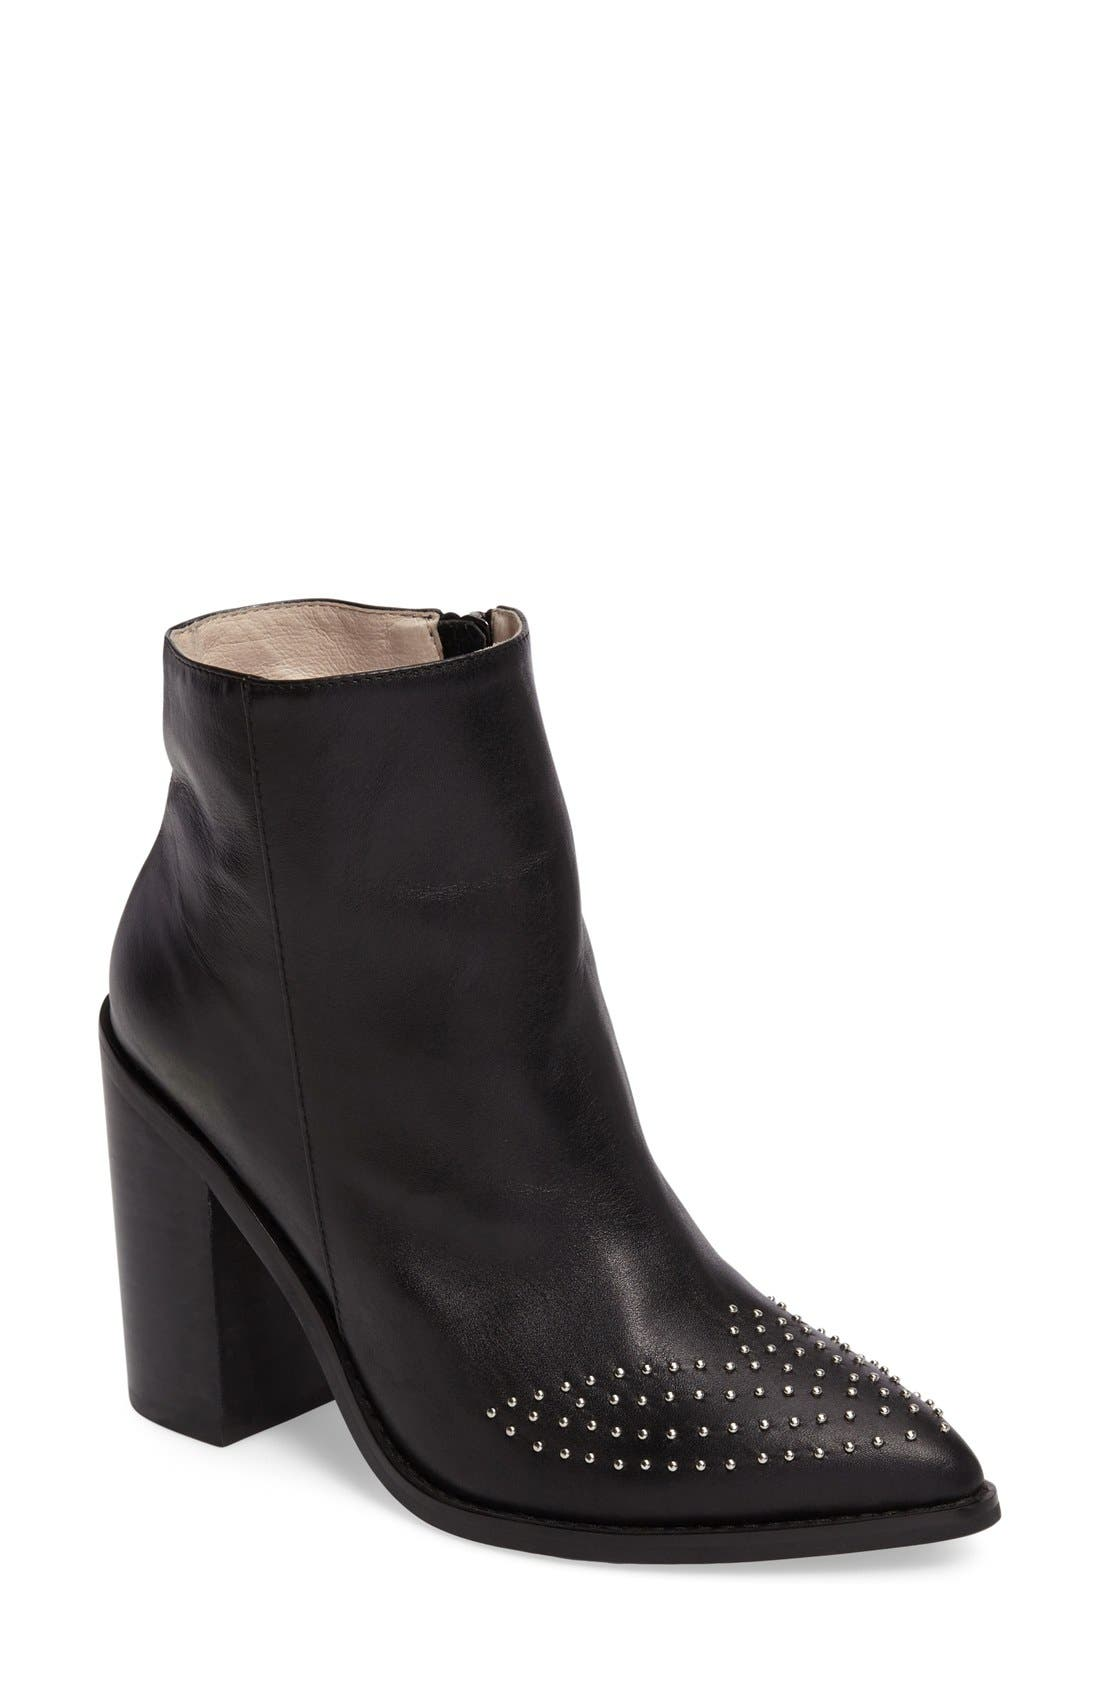 Joan Bootie,                         Main,                         color, Black Leather